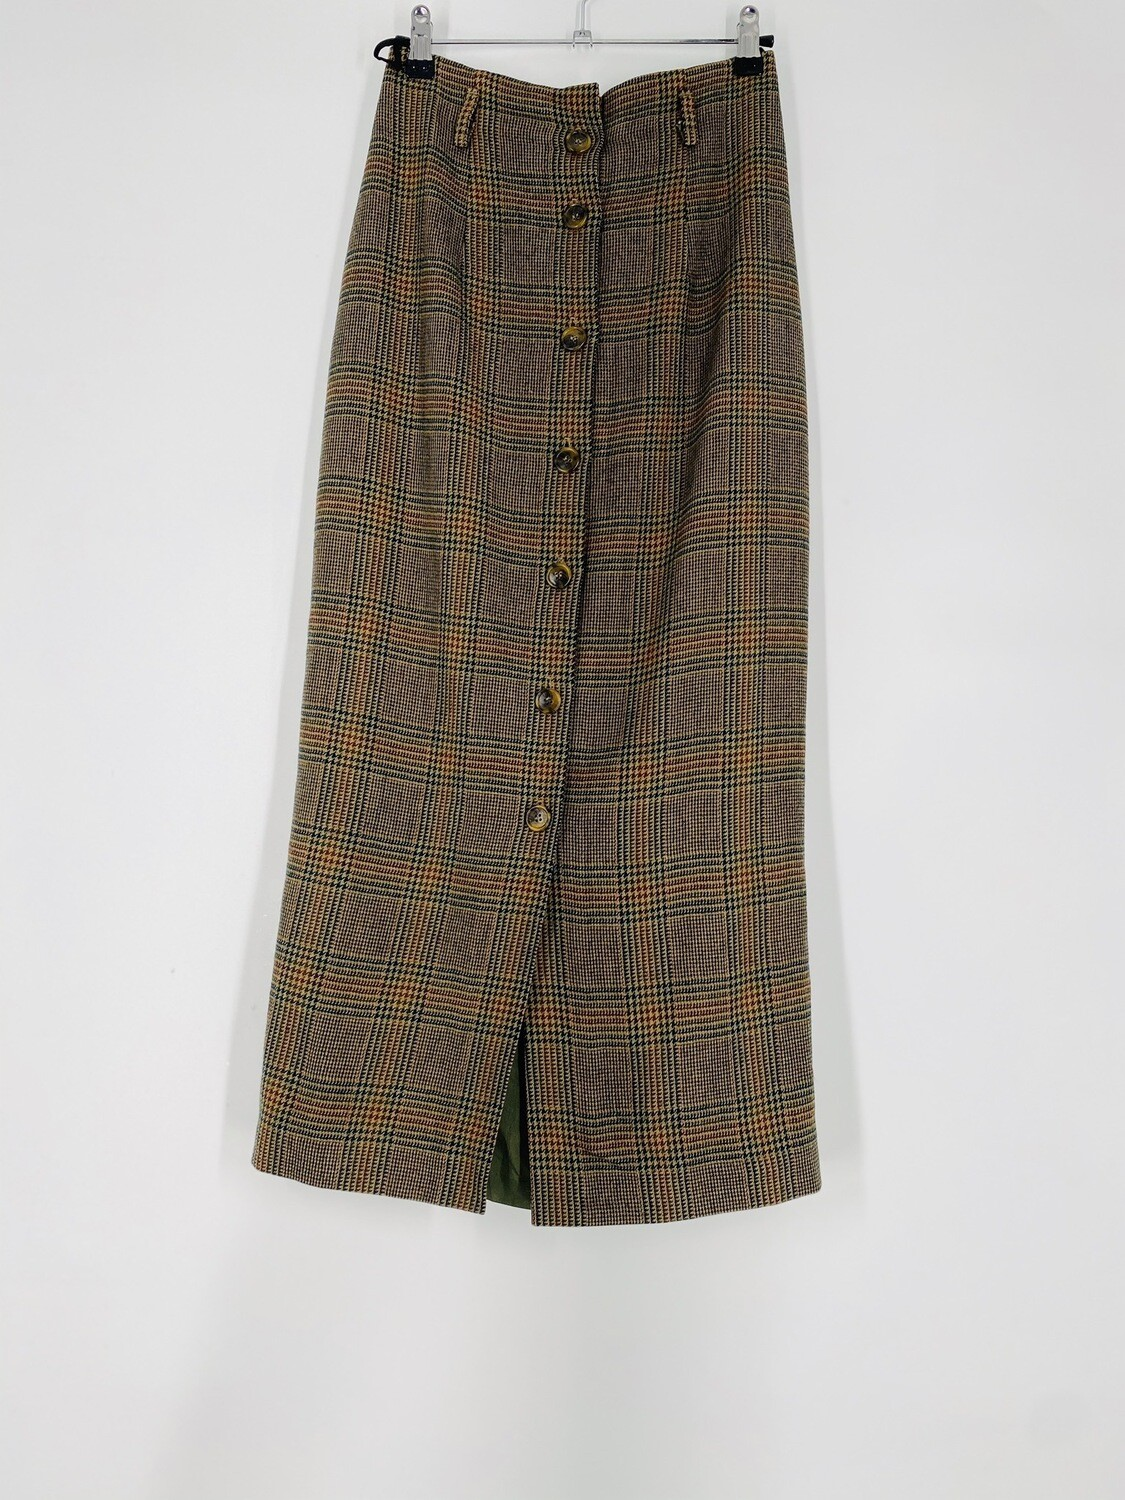 JH Collectibles Plaid Skirt Size S